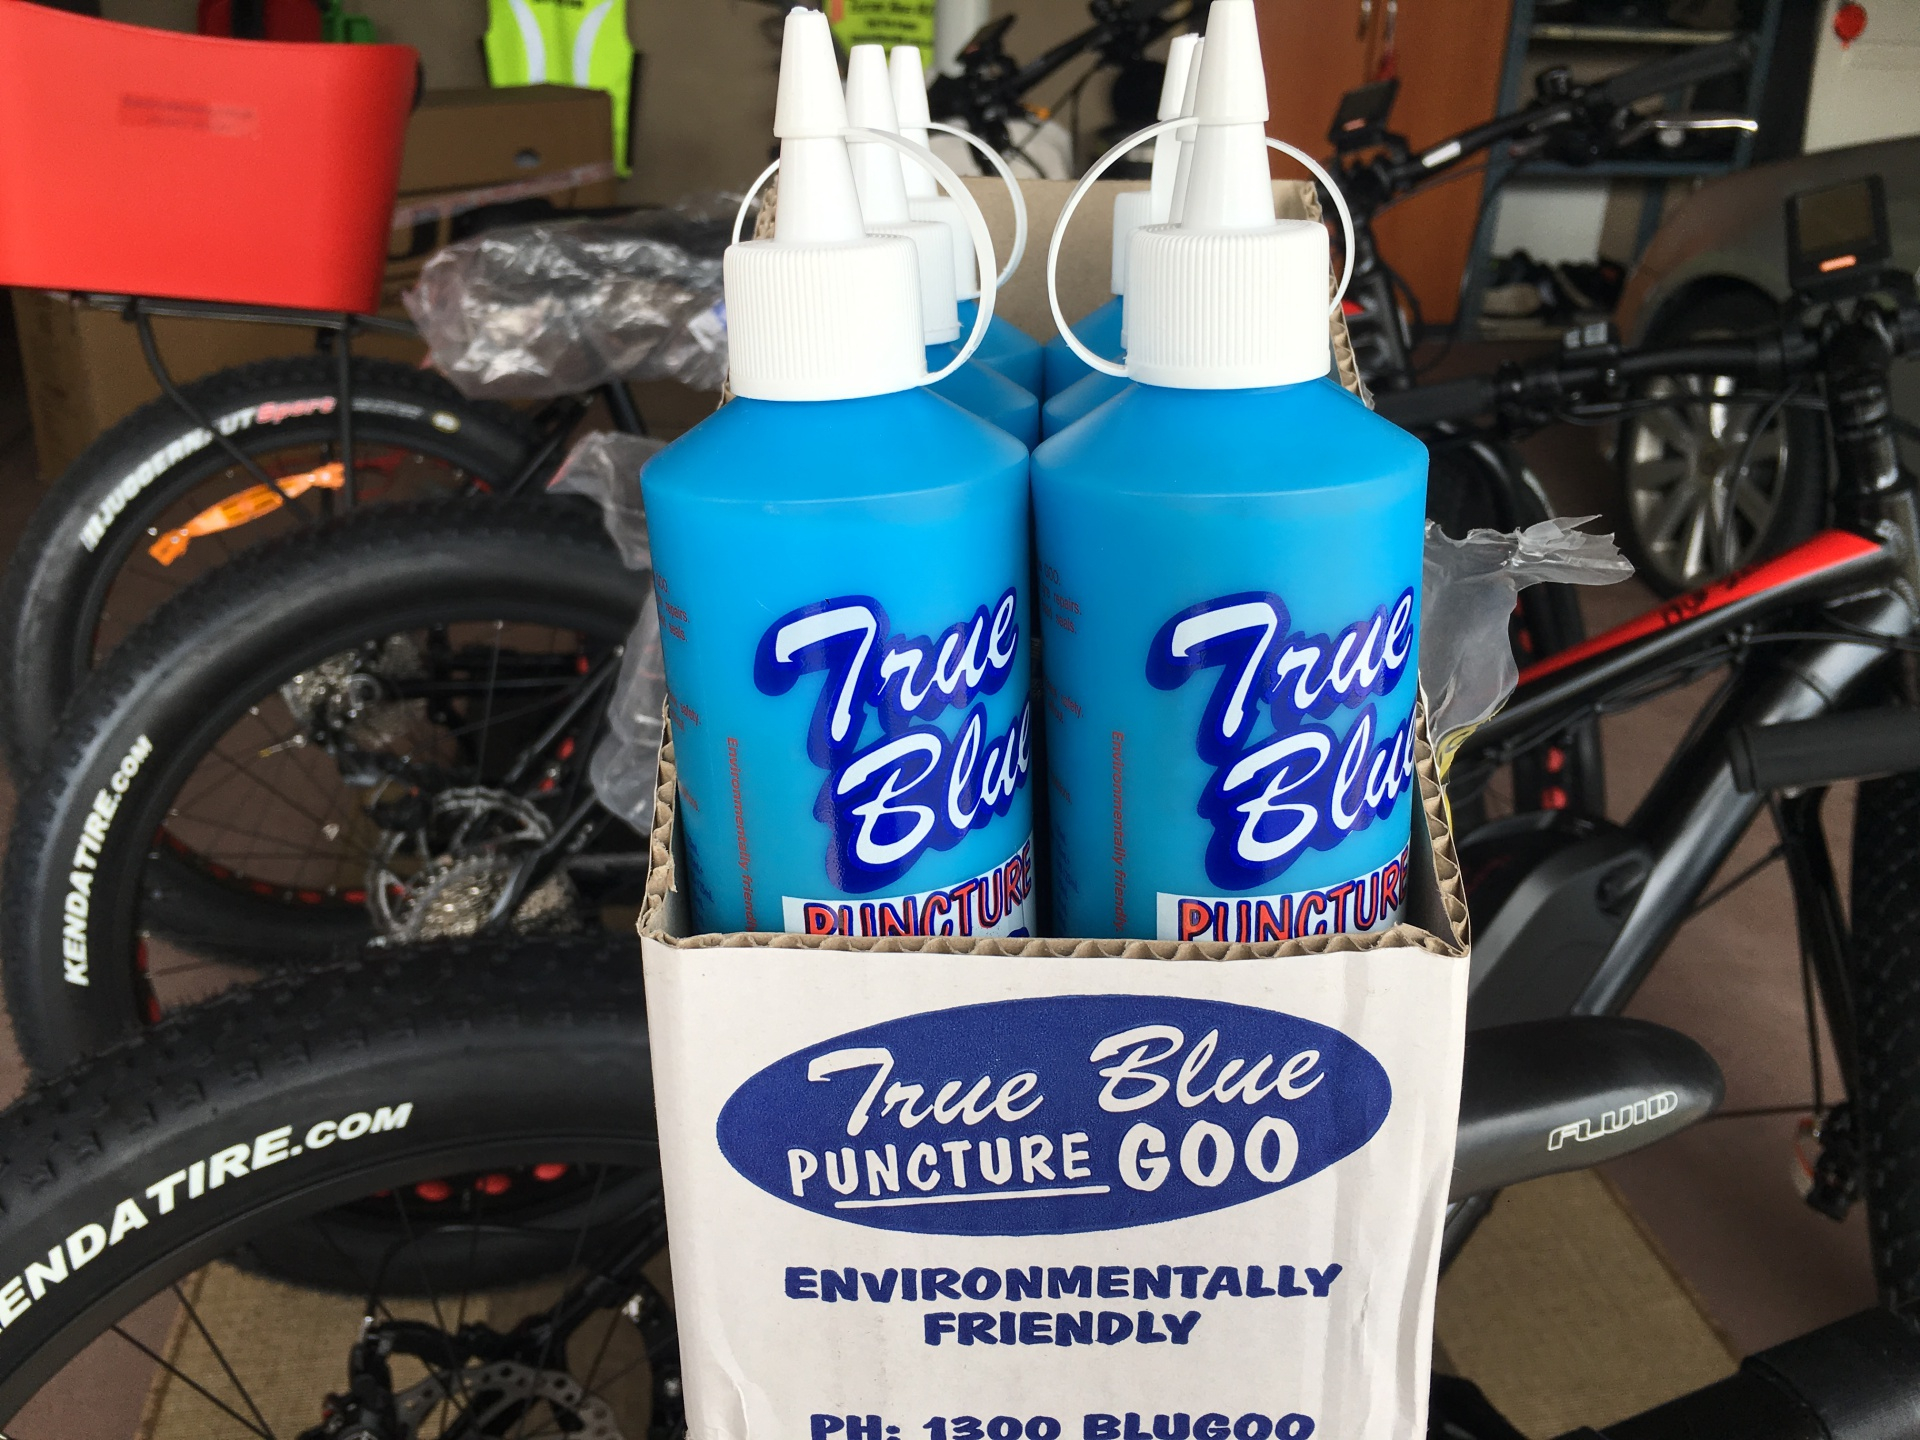 Electric Bikes - Tyre Puncture Repair Goo - 0417400040